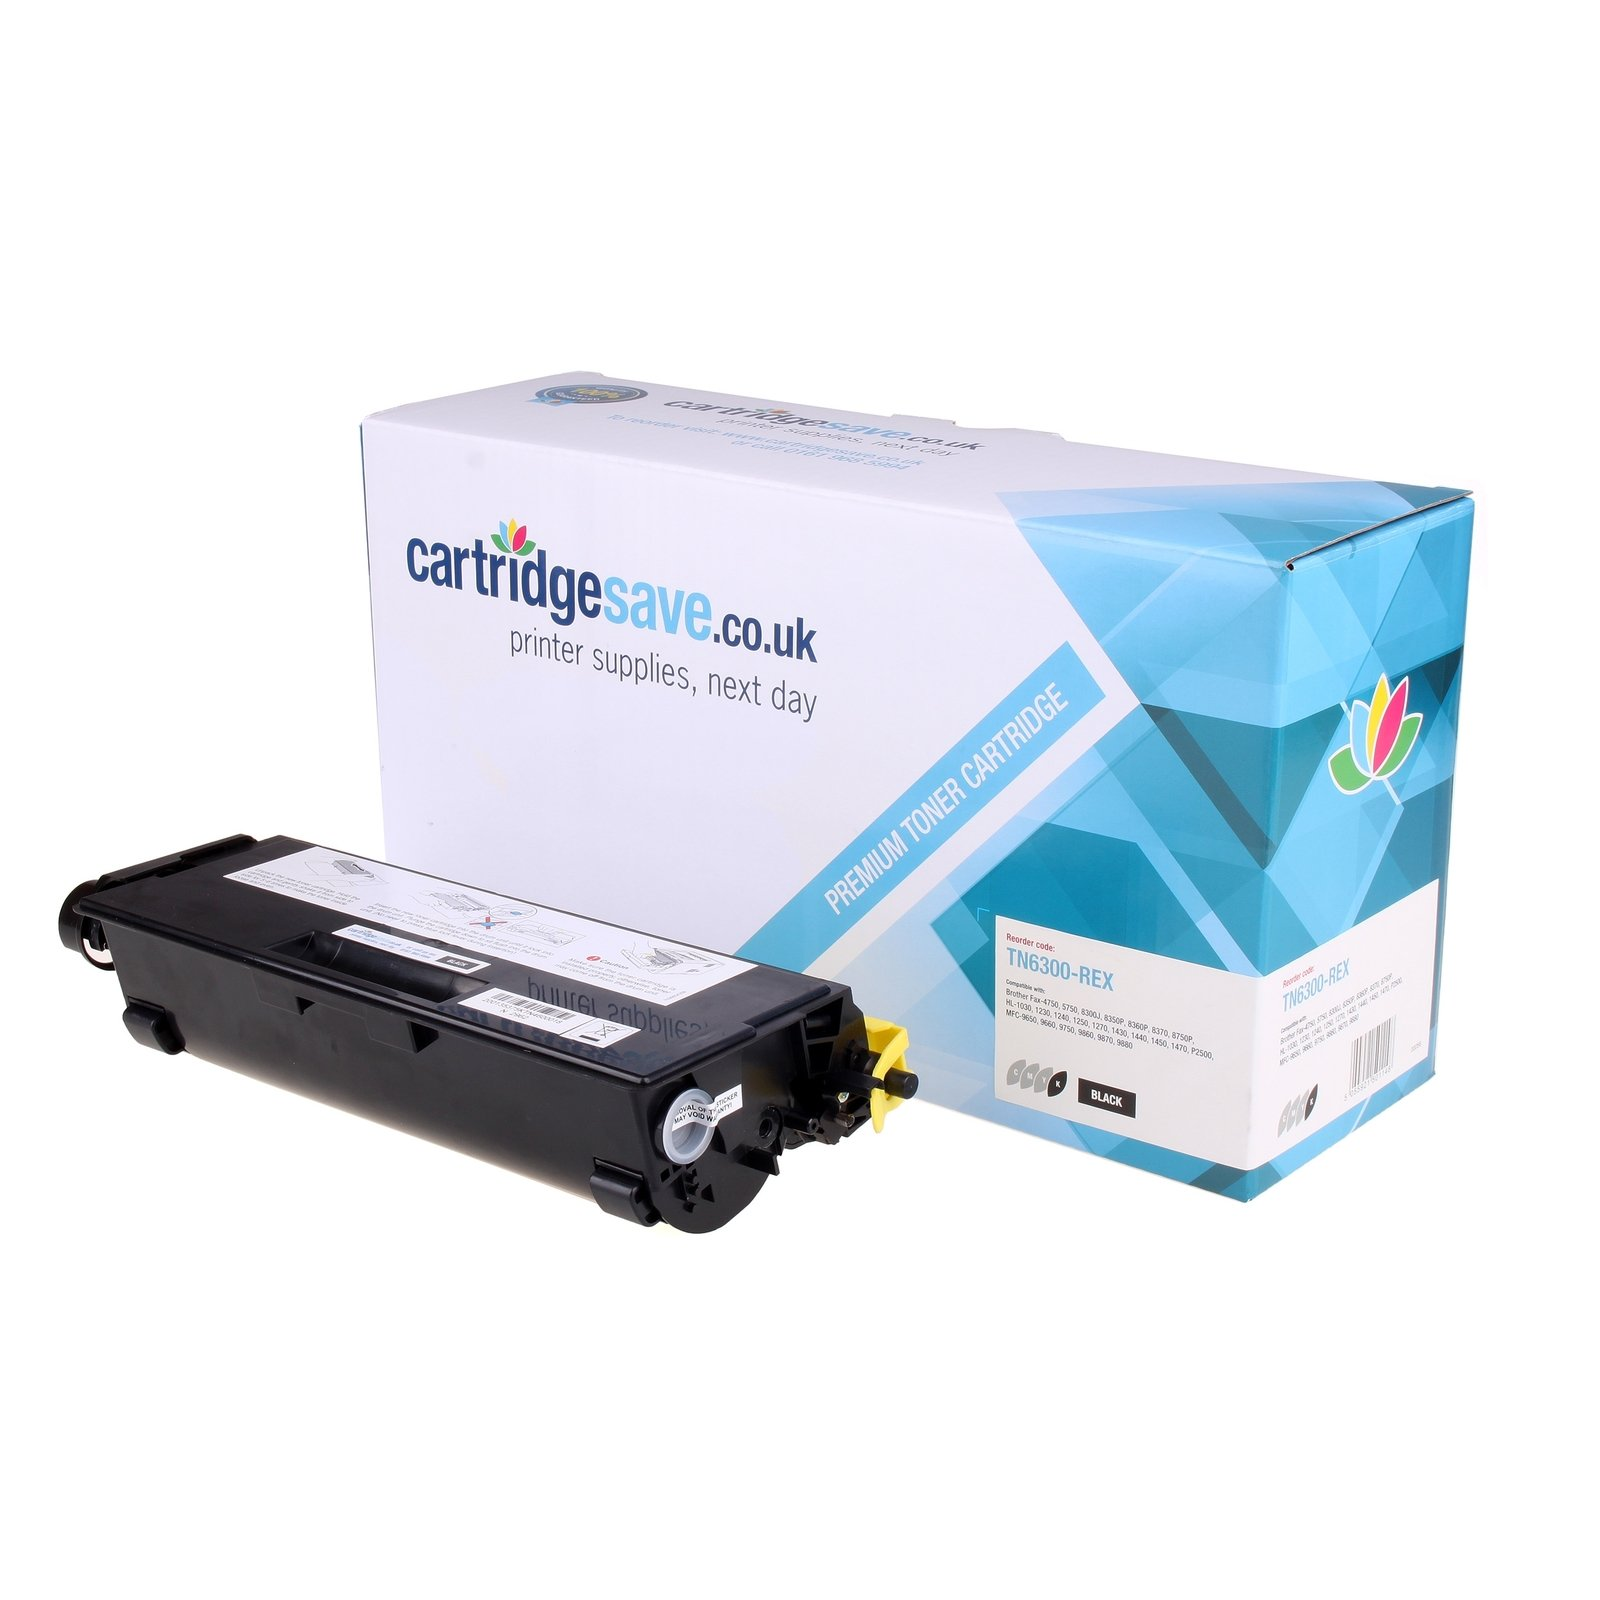 Compatible Black Brother TN-6300 Toner Cartridge (Replaces Brother TN6300 Laser Printer Cartridge)